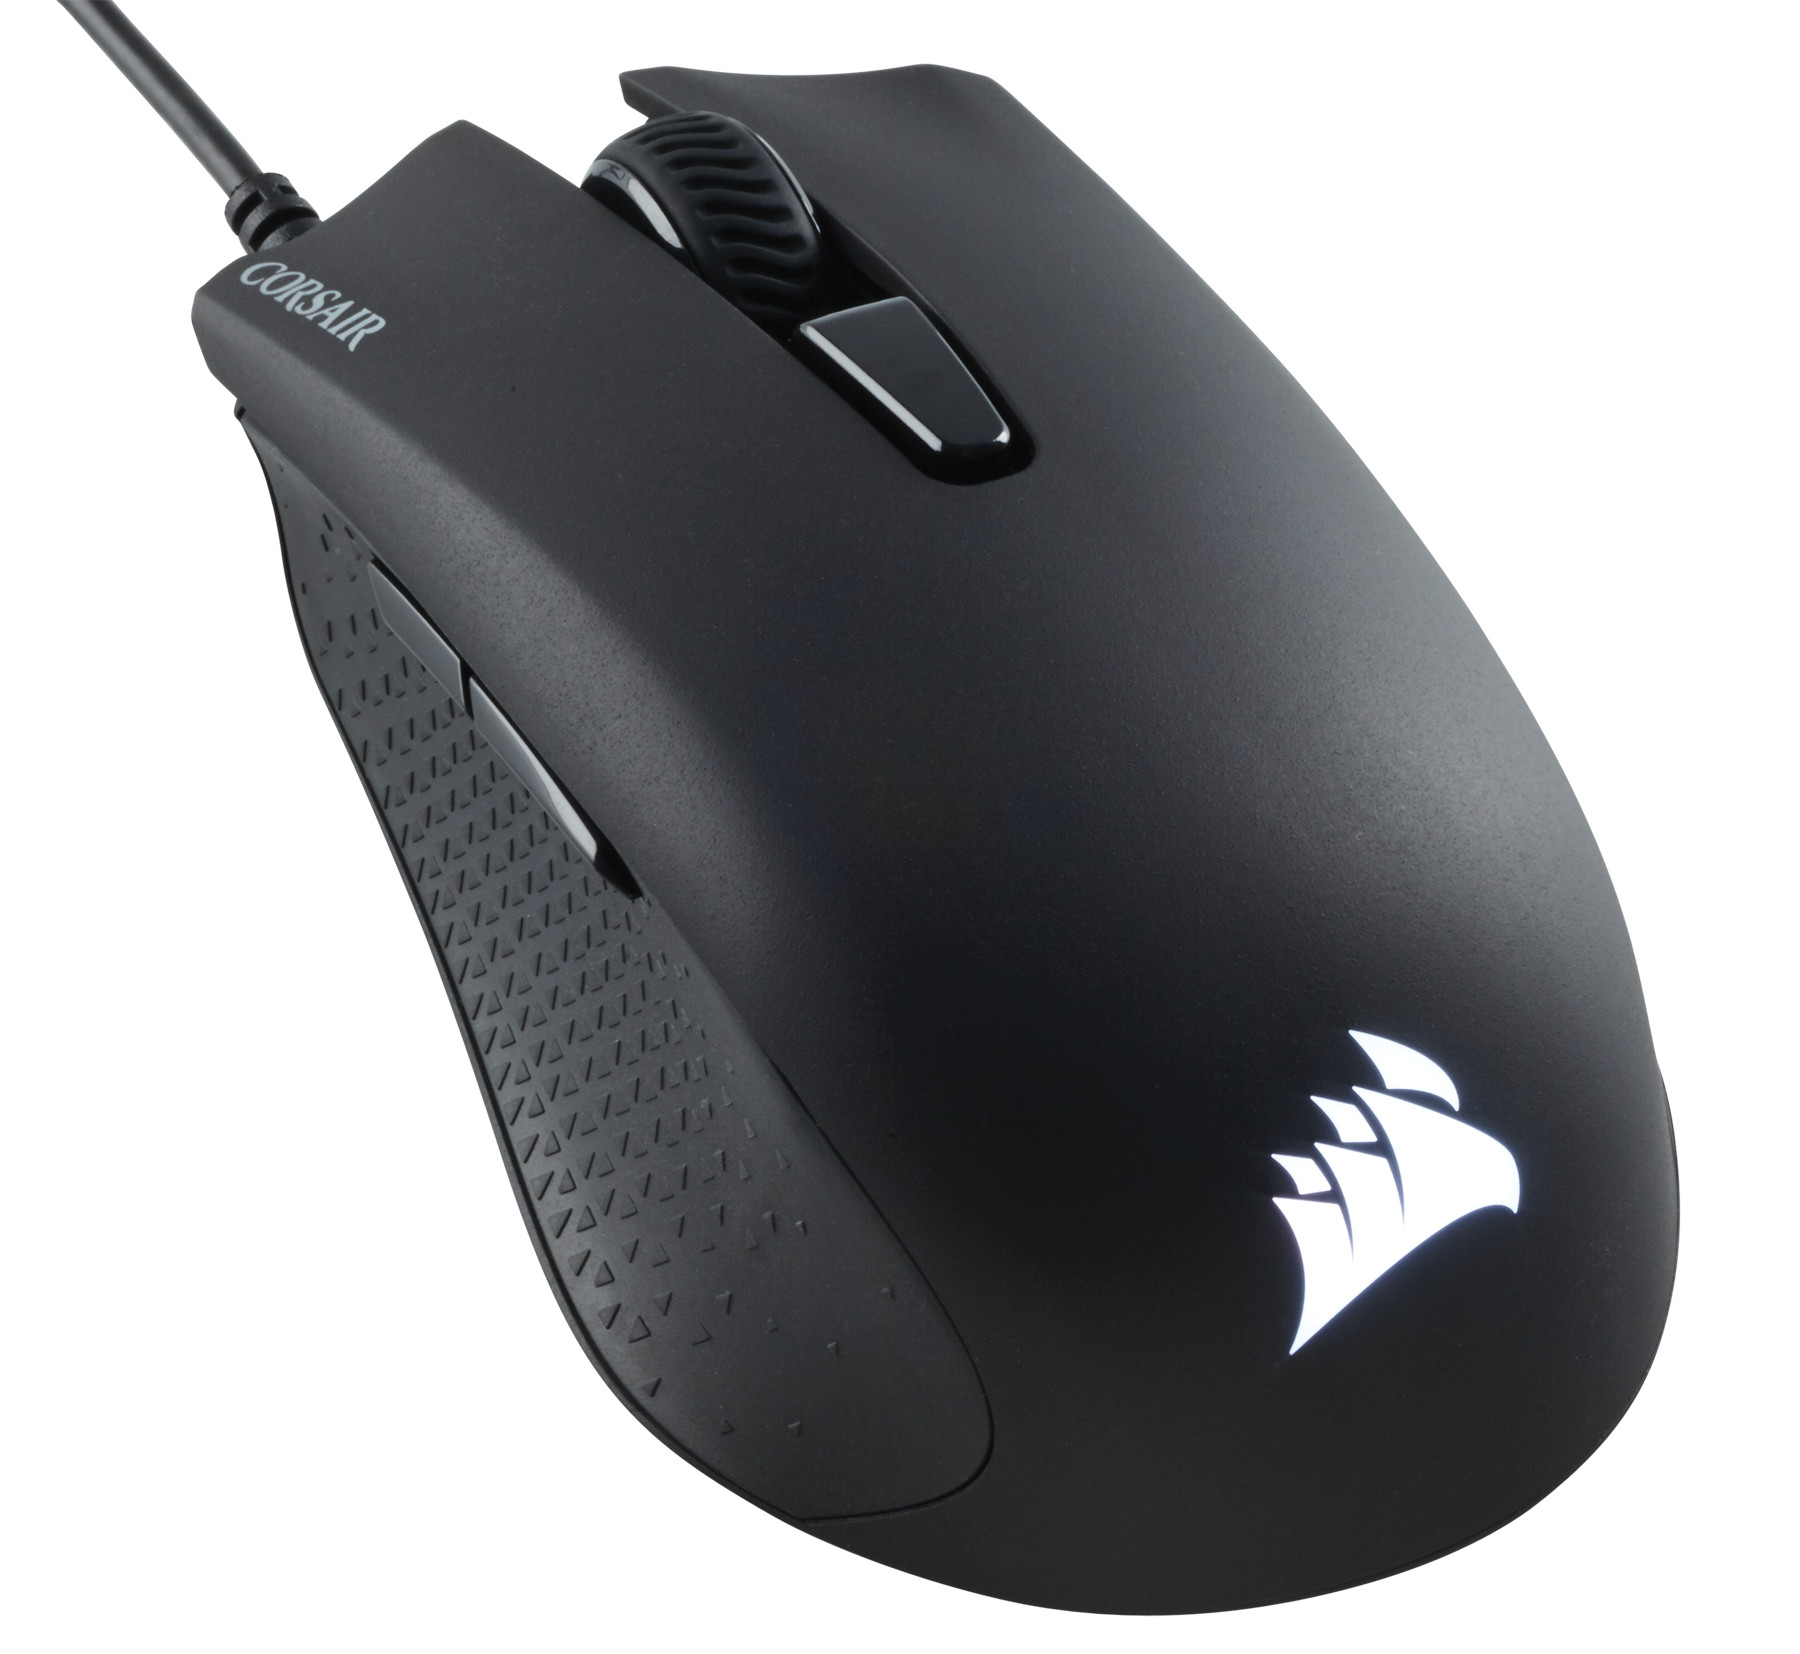 CORSAIR Launches New HARPOON RGB Gaming Mouse and K55 RGB